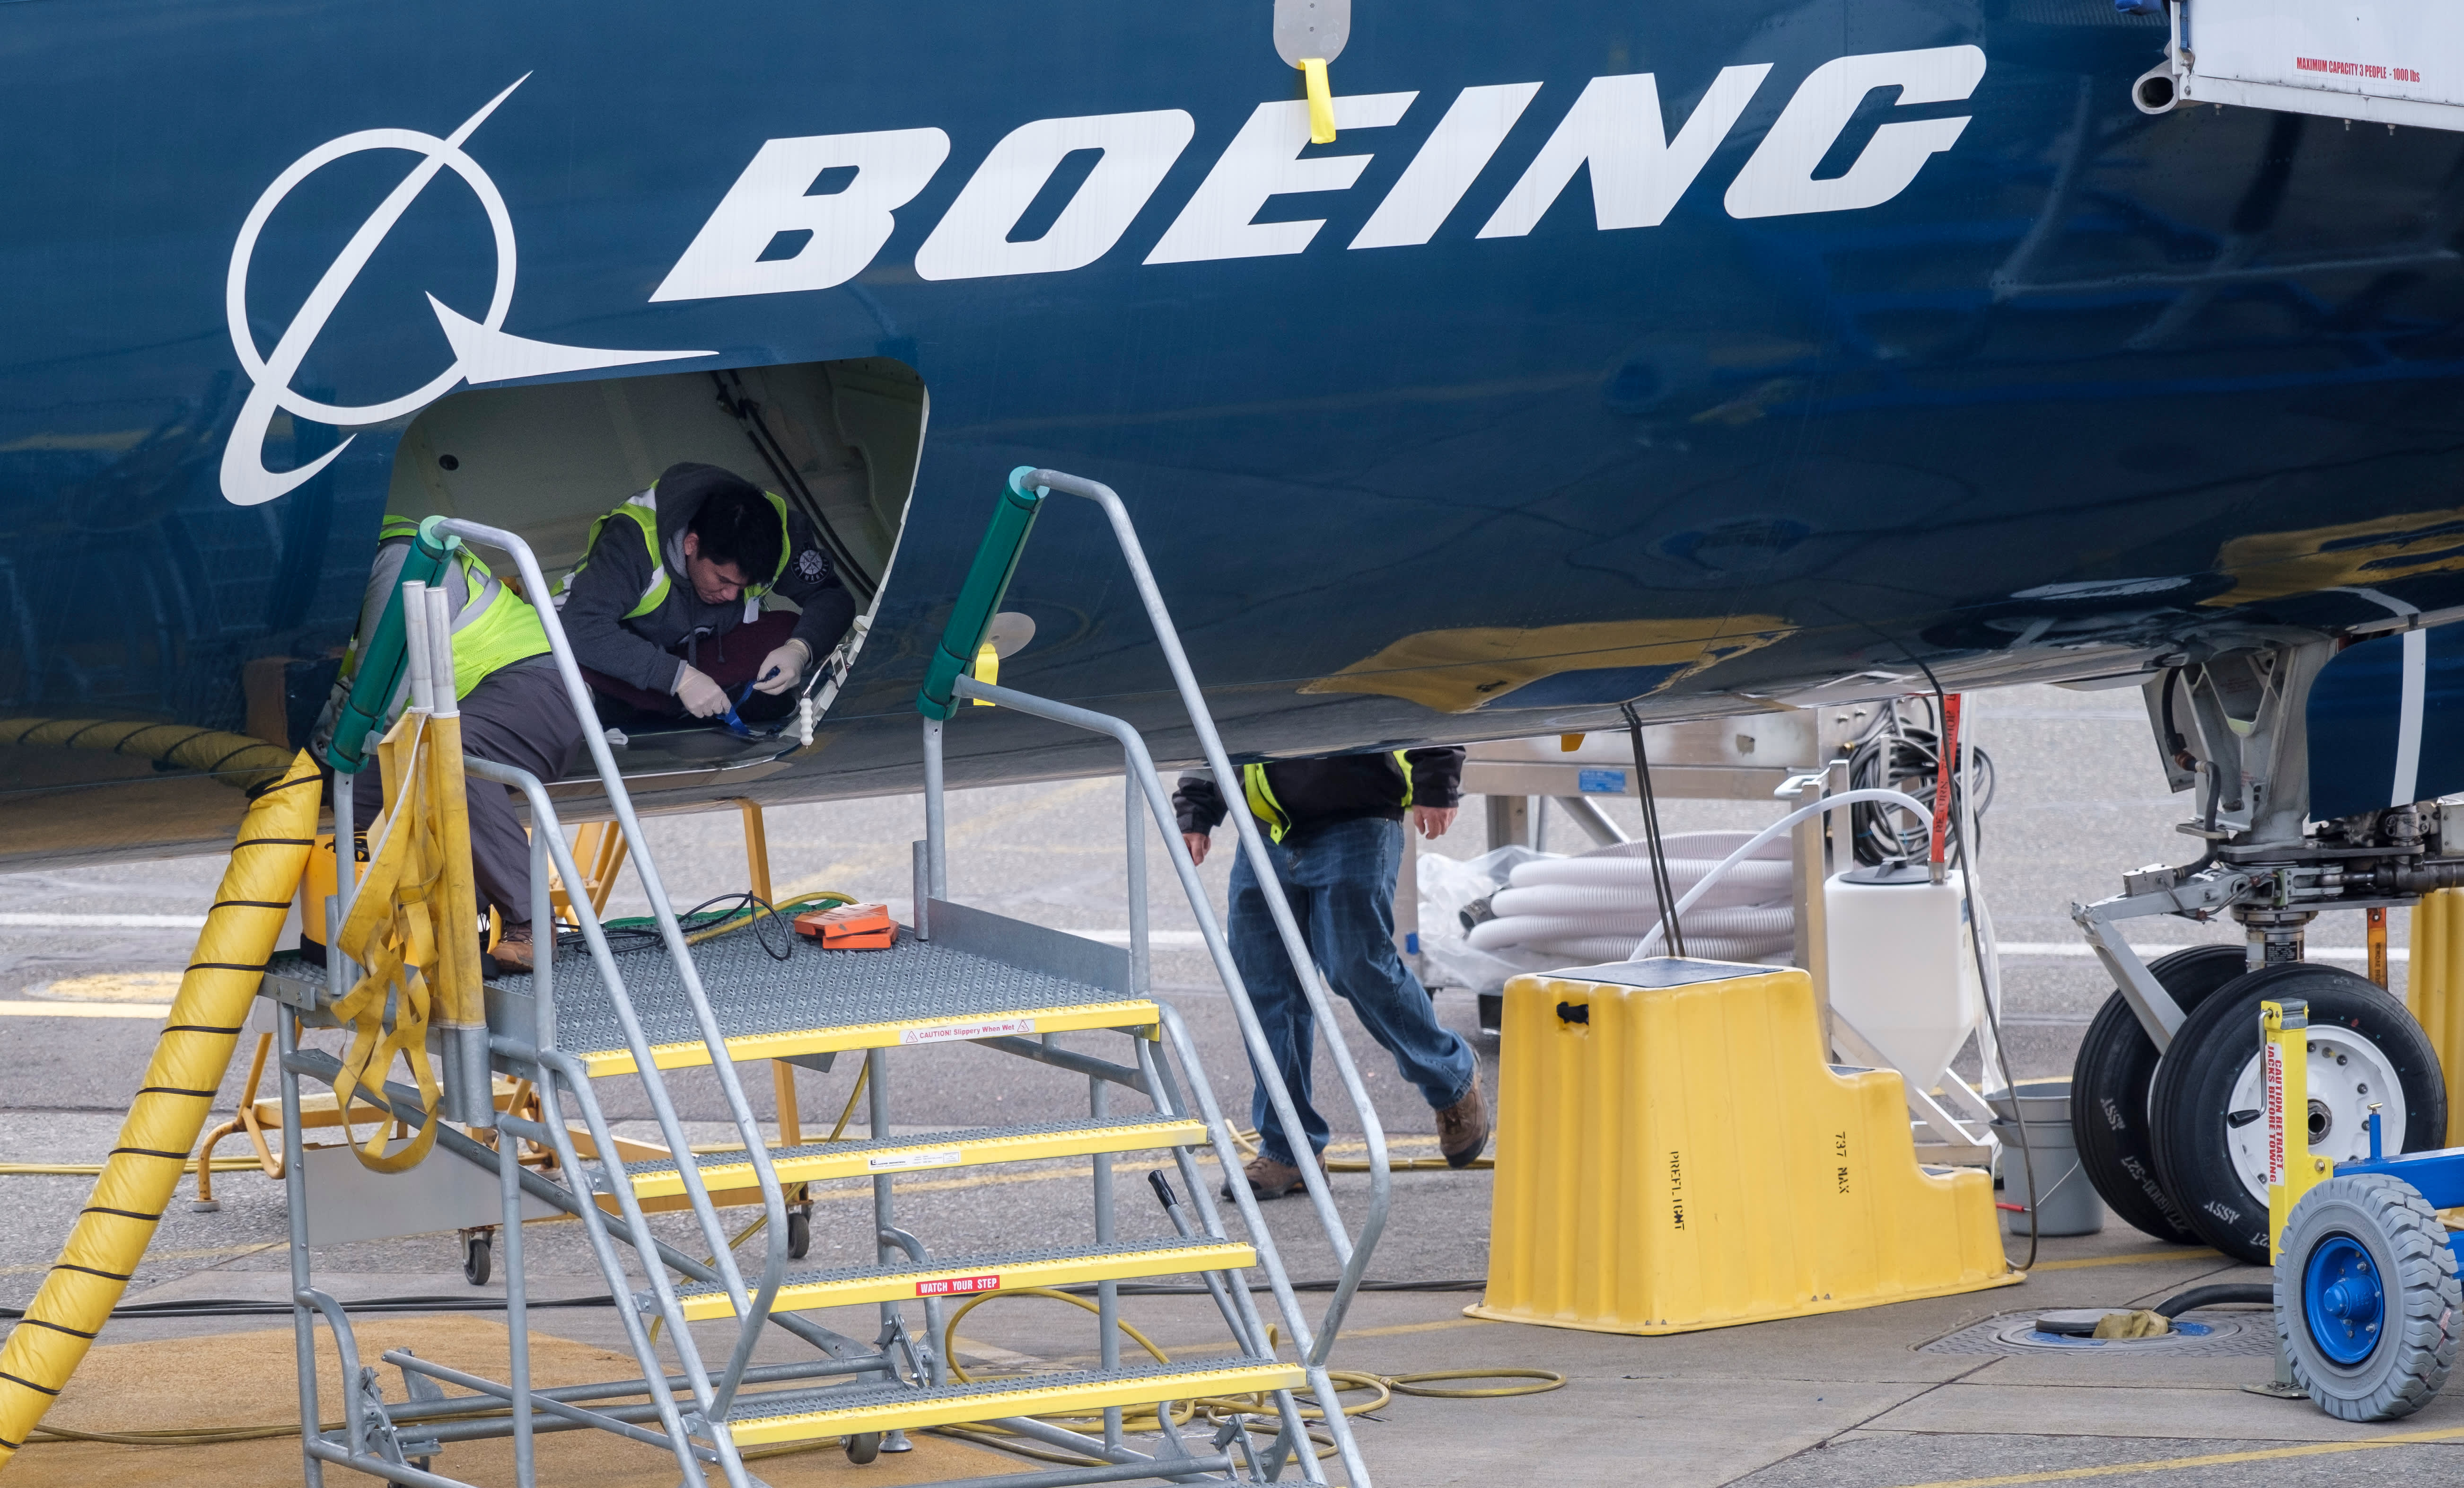 Stocks making the biggest moves midday: Boeing, Carnival, Goldman Sachs and more